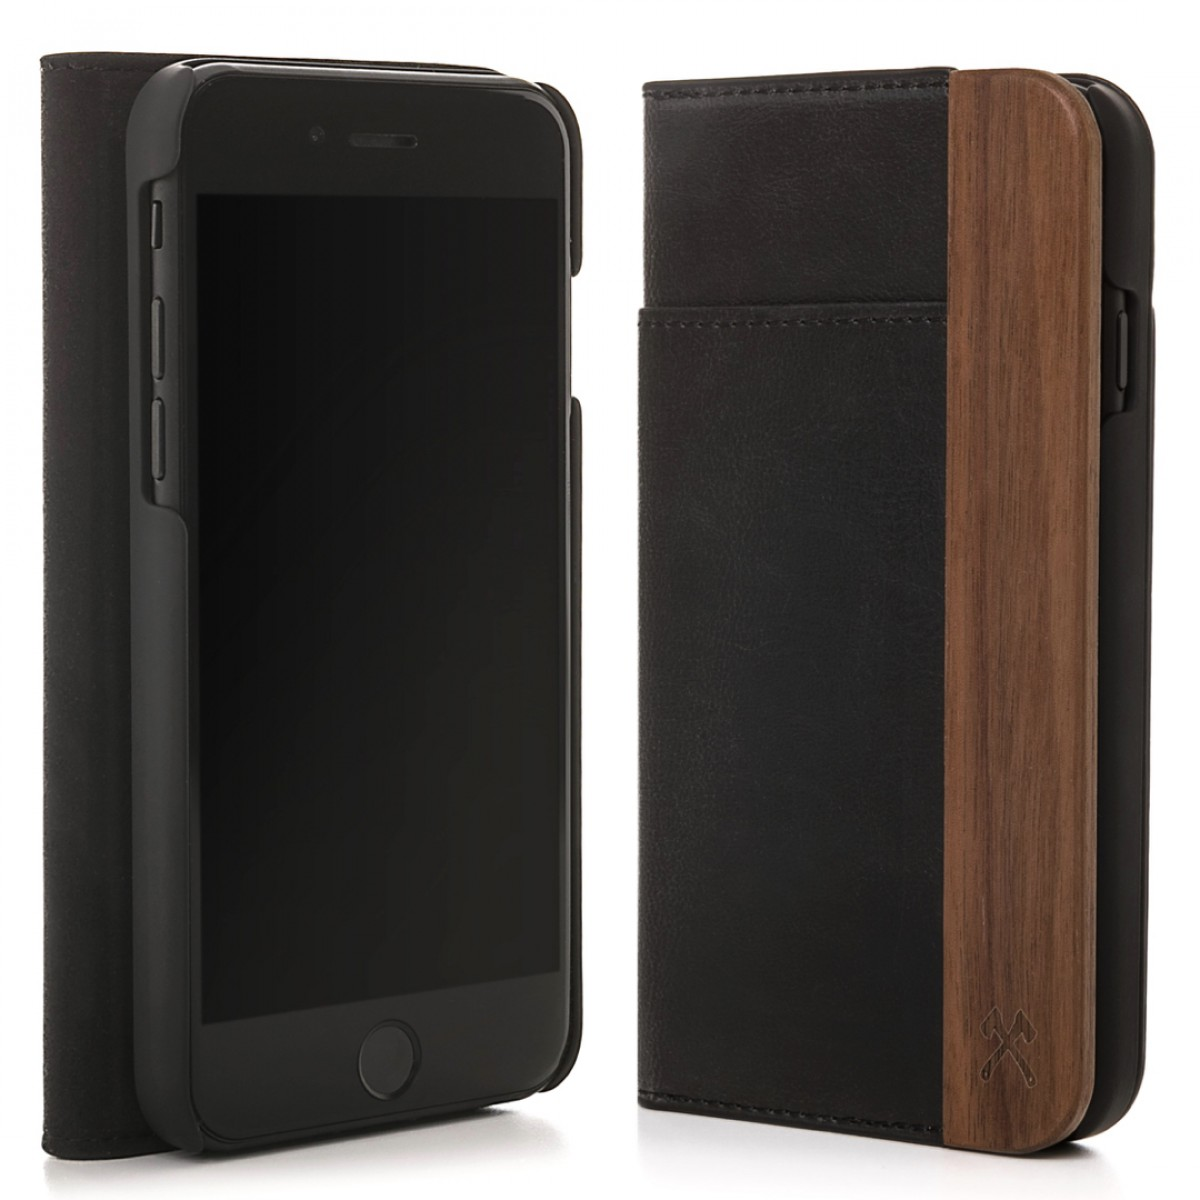 Woodcessories - EcoWallet - Premium Design Hülle, Case, Cover für das iPhone aus FSC zert. Walnuss Holz & hochwertiger Lederoptik (iPhone 7 Plus/ 8 Plus)